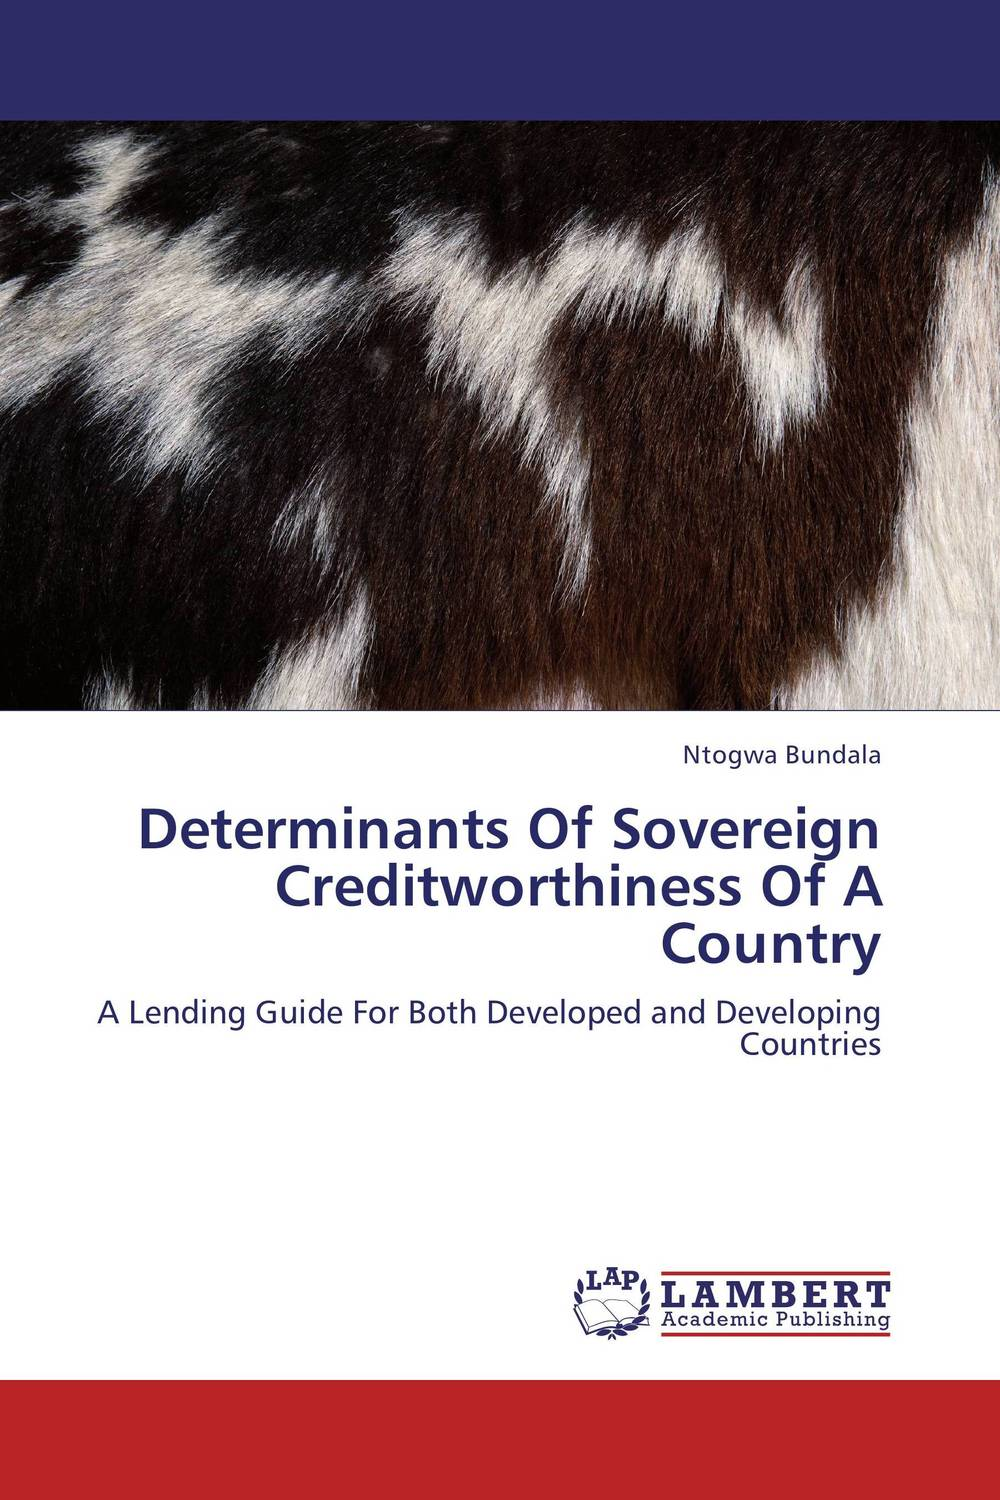 Determinants Of Sovereign Creditworthiness Of A Country the credibility of credit ratings